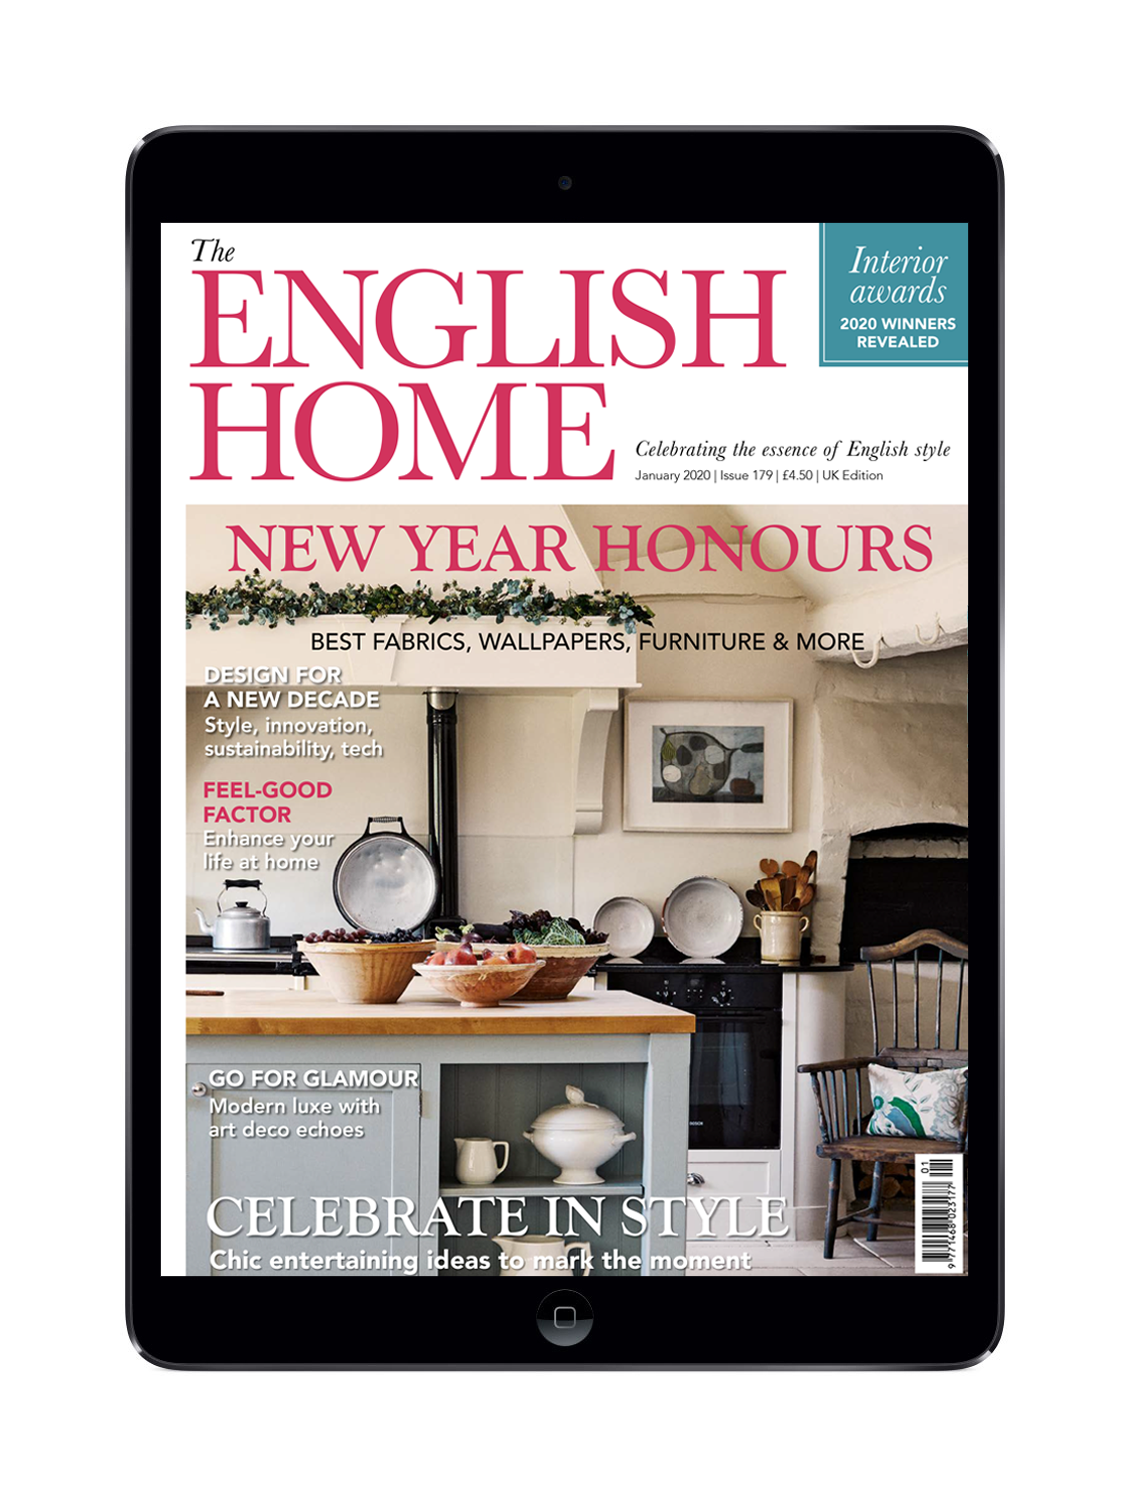 The English Home January 2020 Digital Edition The Chelsea 1130x1500